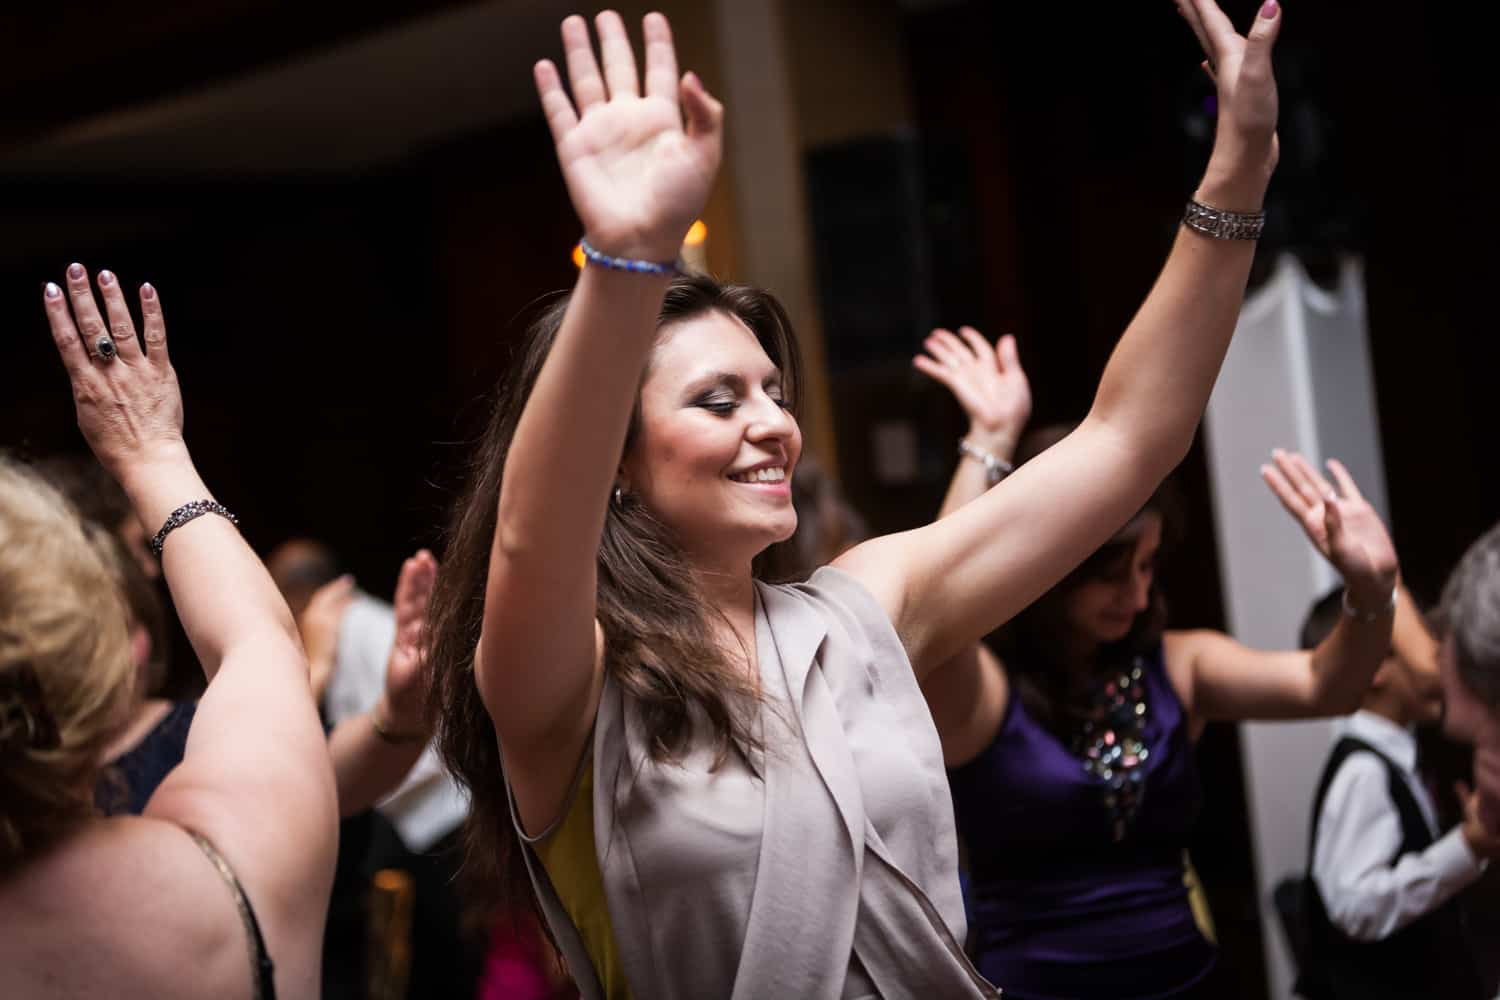 Female guest dancing with hands raised at a Harvard Club wedding